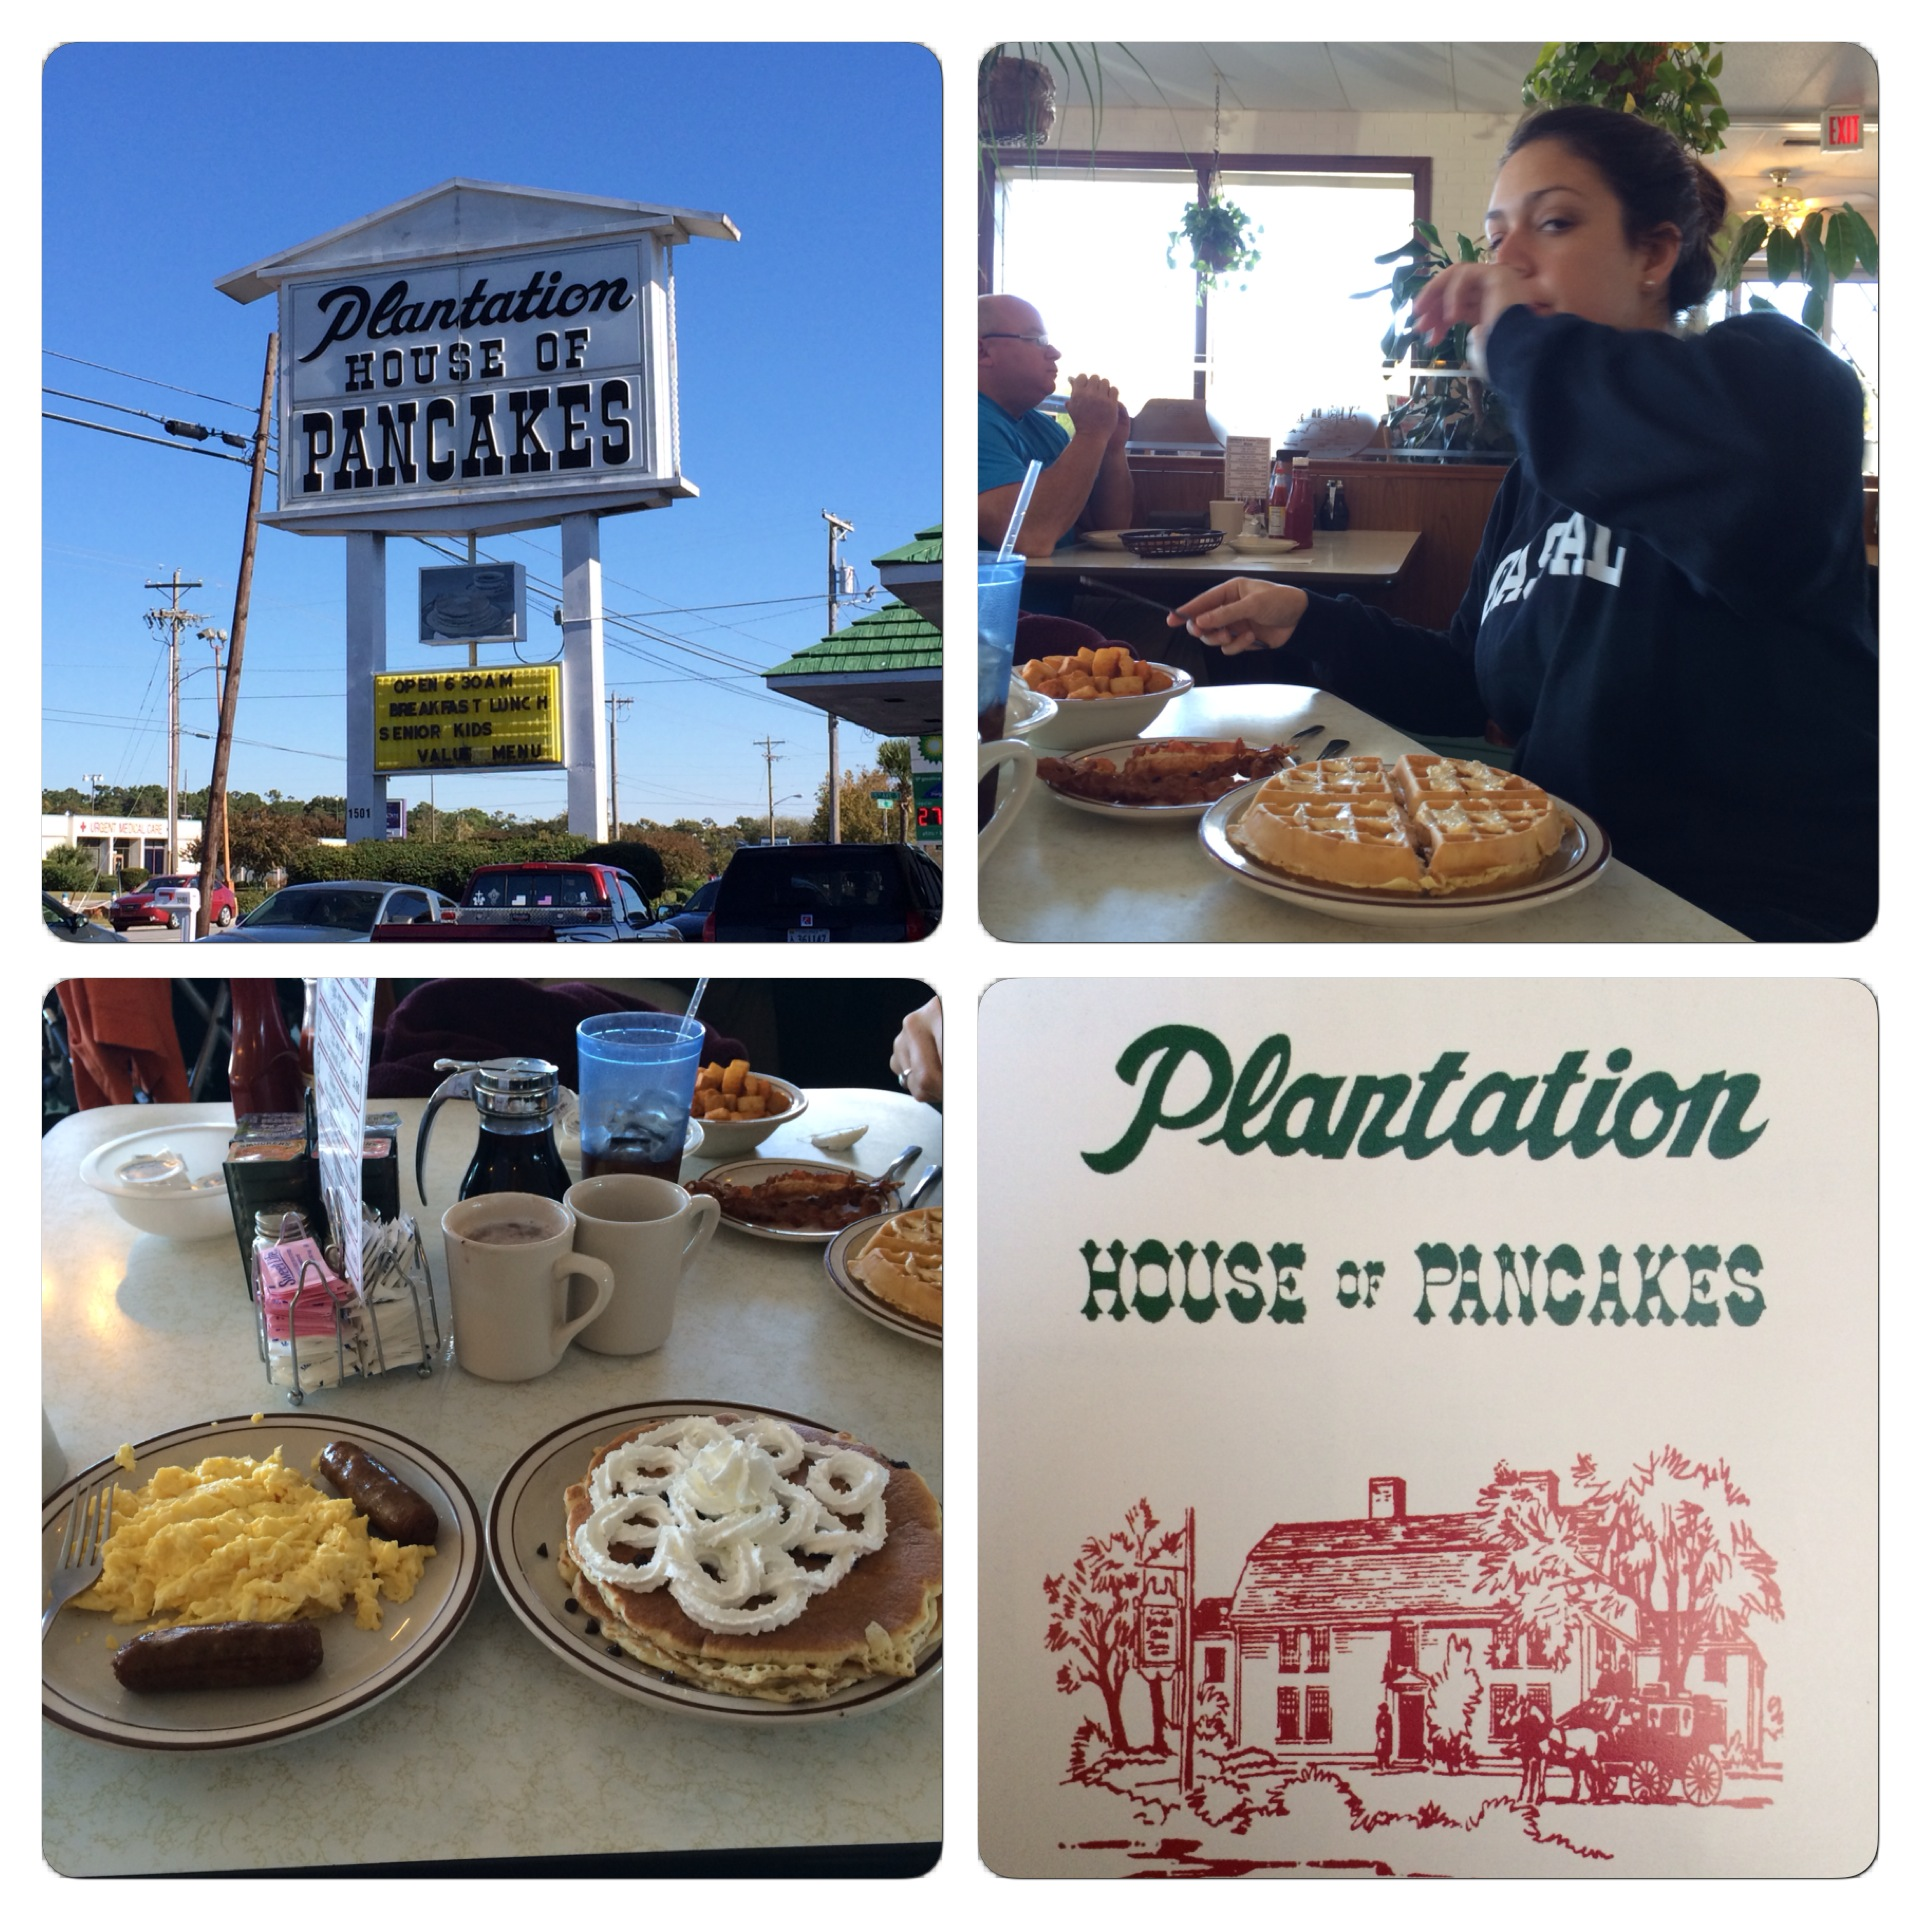 Had a very nice breakfast today at Plantation Pancake House.